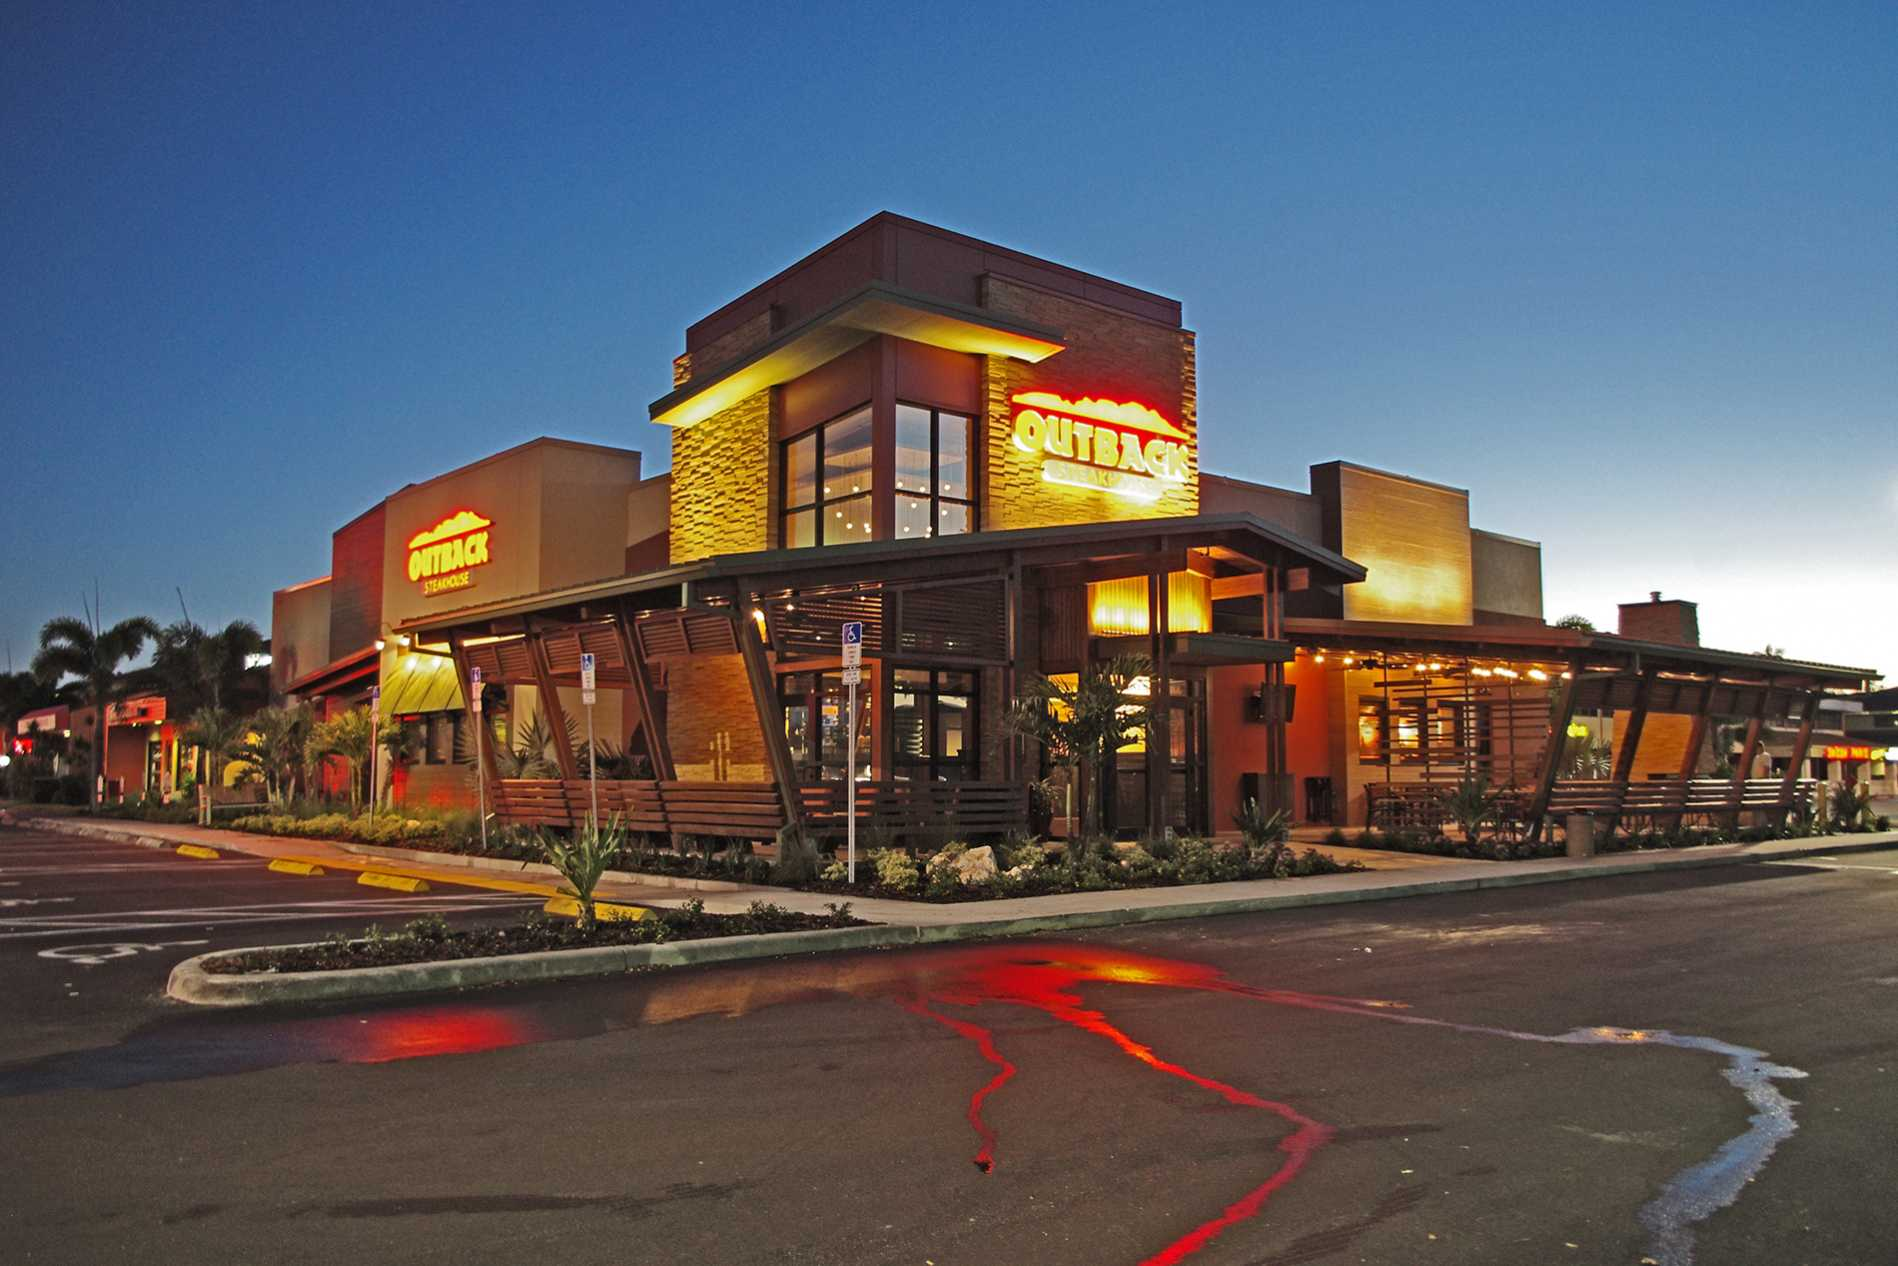 Outback steakhouse dp architects